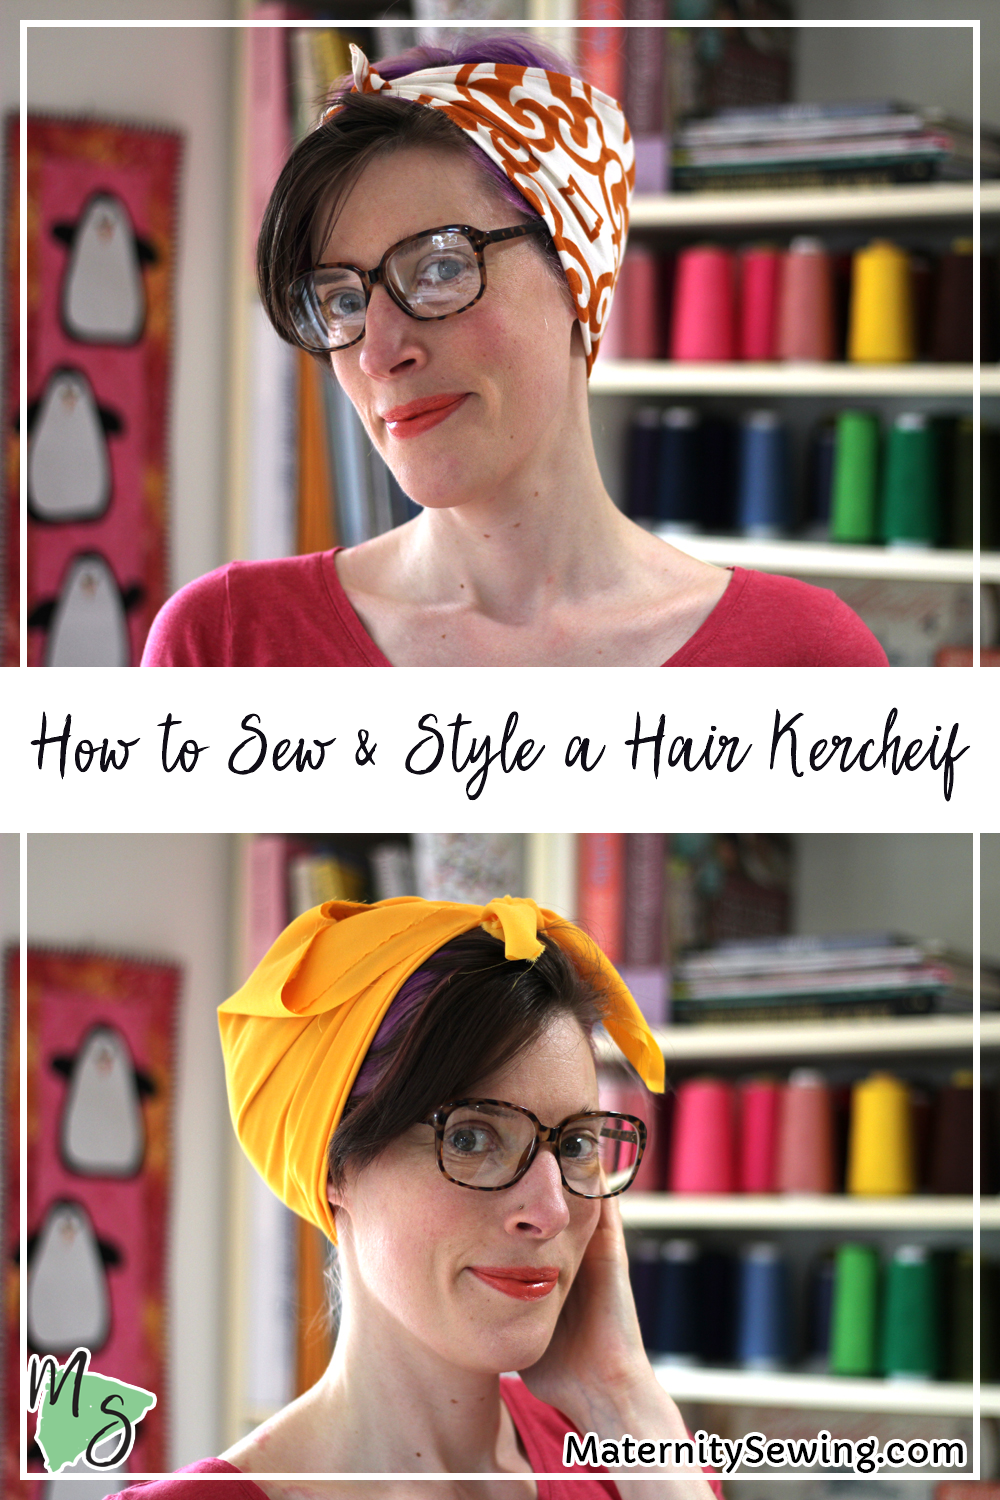 How to Sew and Style a Hair Kerchief. On MaternitySewing.com